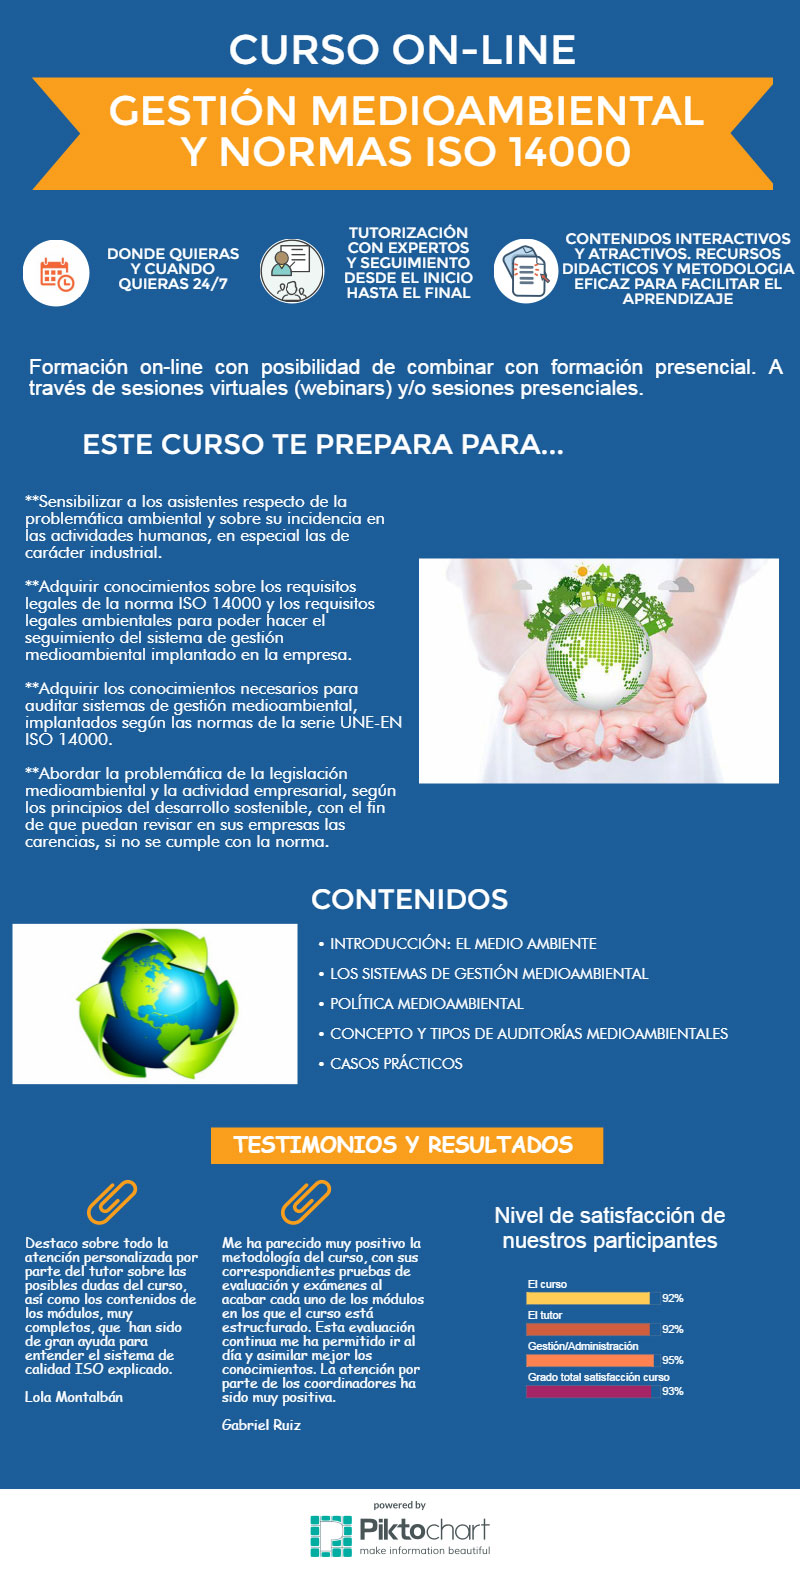 gestion-medioambiental